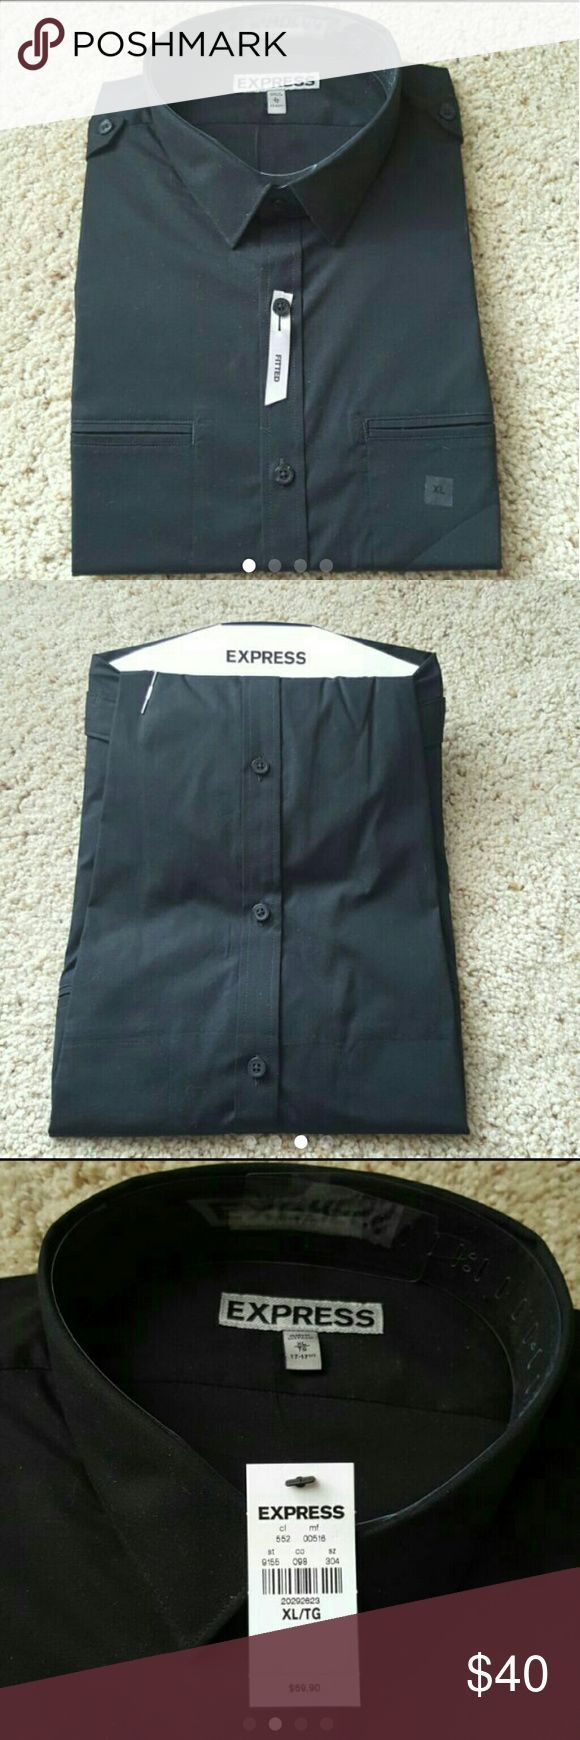 Awesome Express Black Dress NWT Men's Black Fitted Welt Pocket Going Out Shirt Express Men's black g... Check more at http://24store.ml/fashion/express-black-dress-nwt-mens-black-fitted-welt-pocket-going-out-shirt-express-mens-black-g/